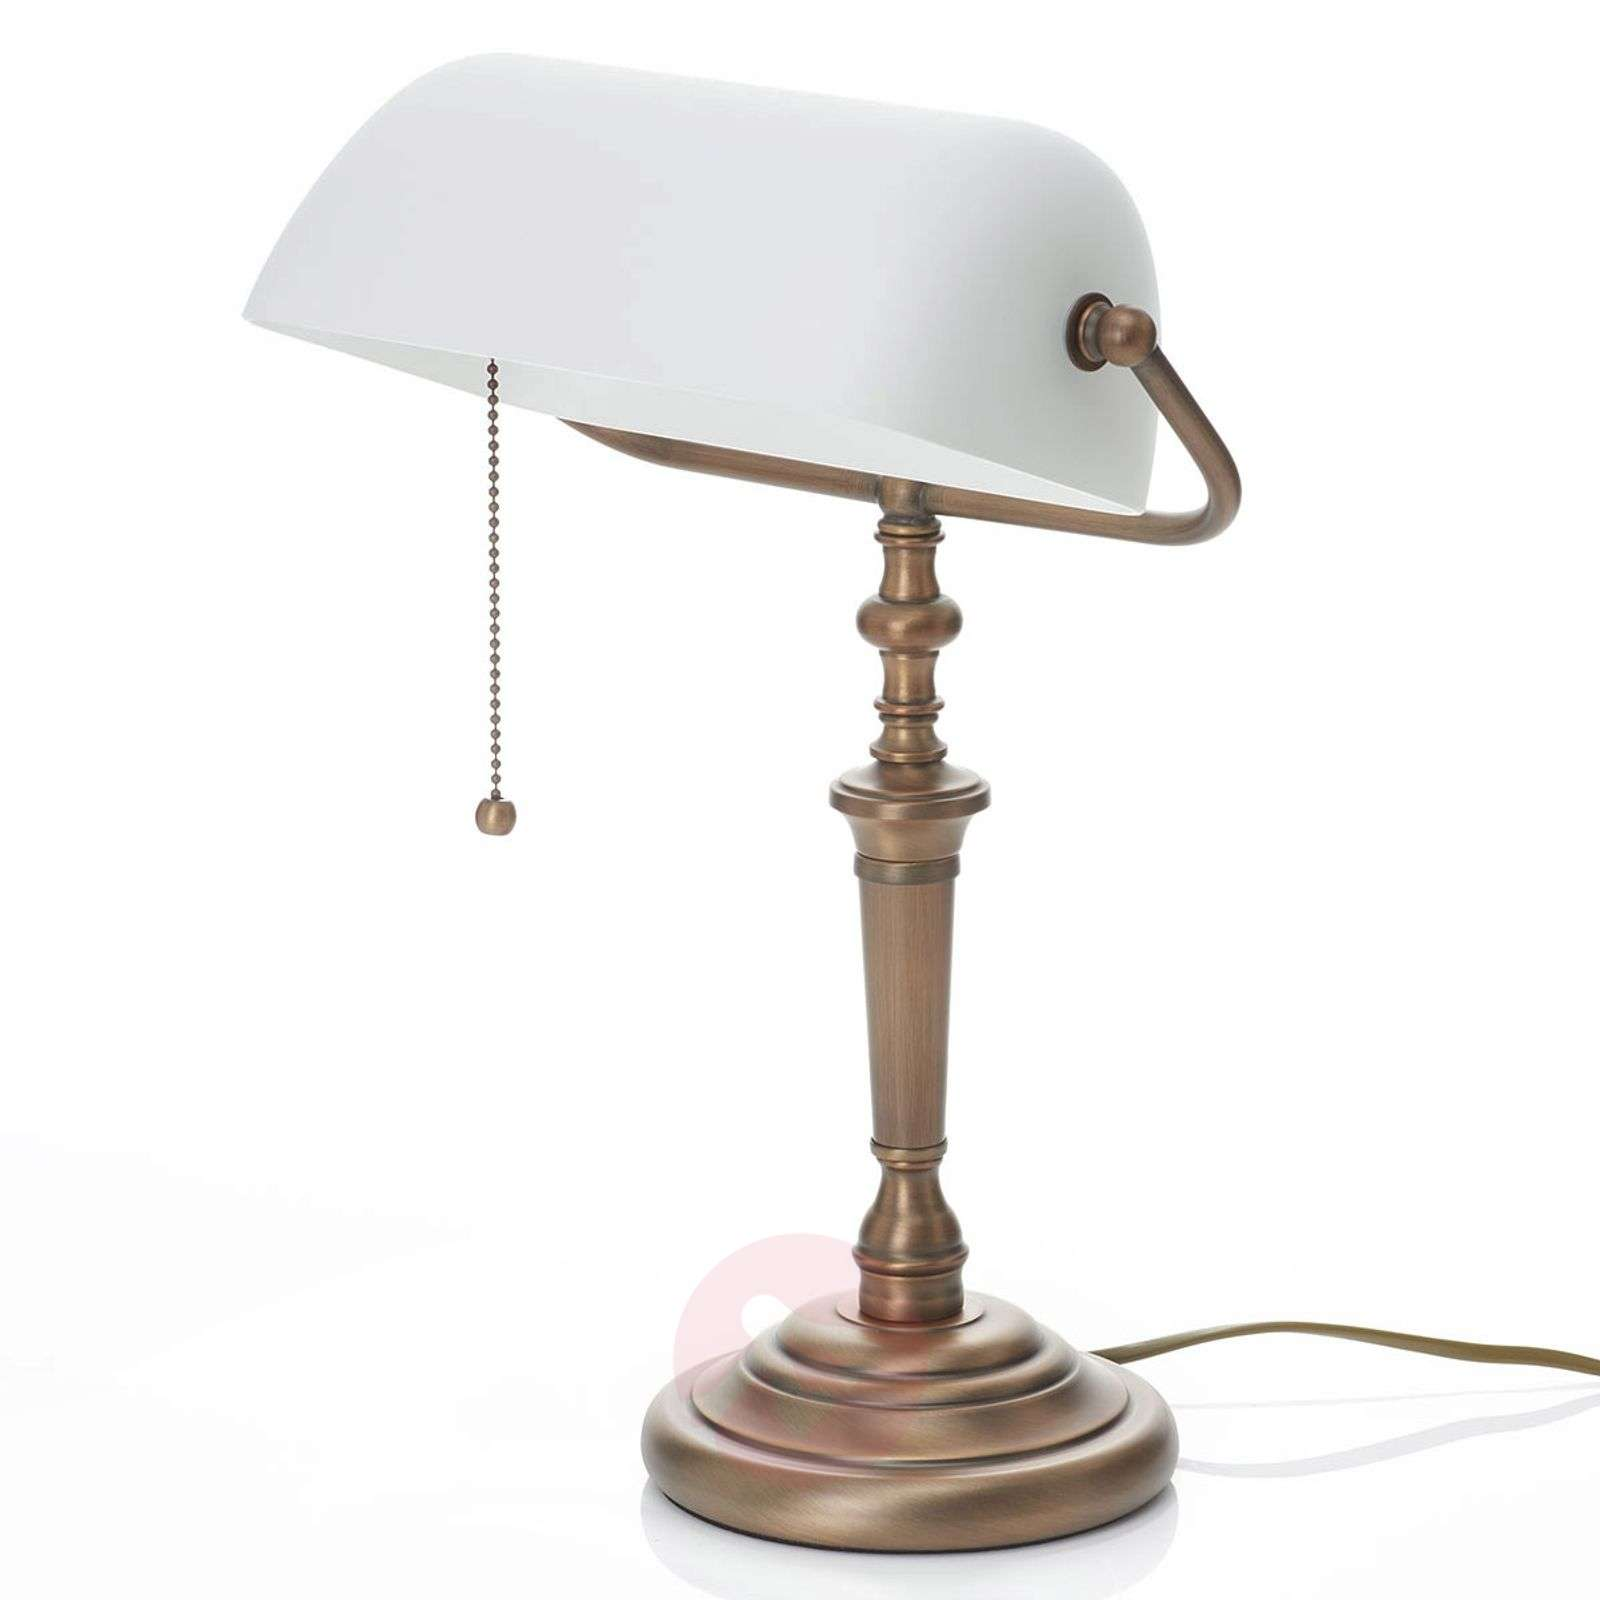 Special banker table lamp Classical, white-8509350-01